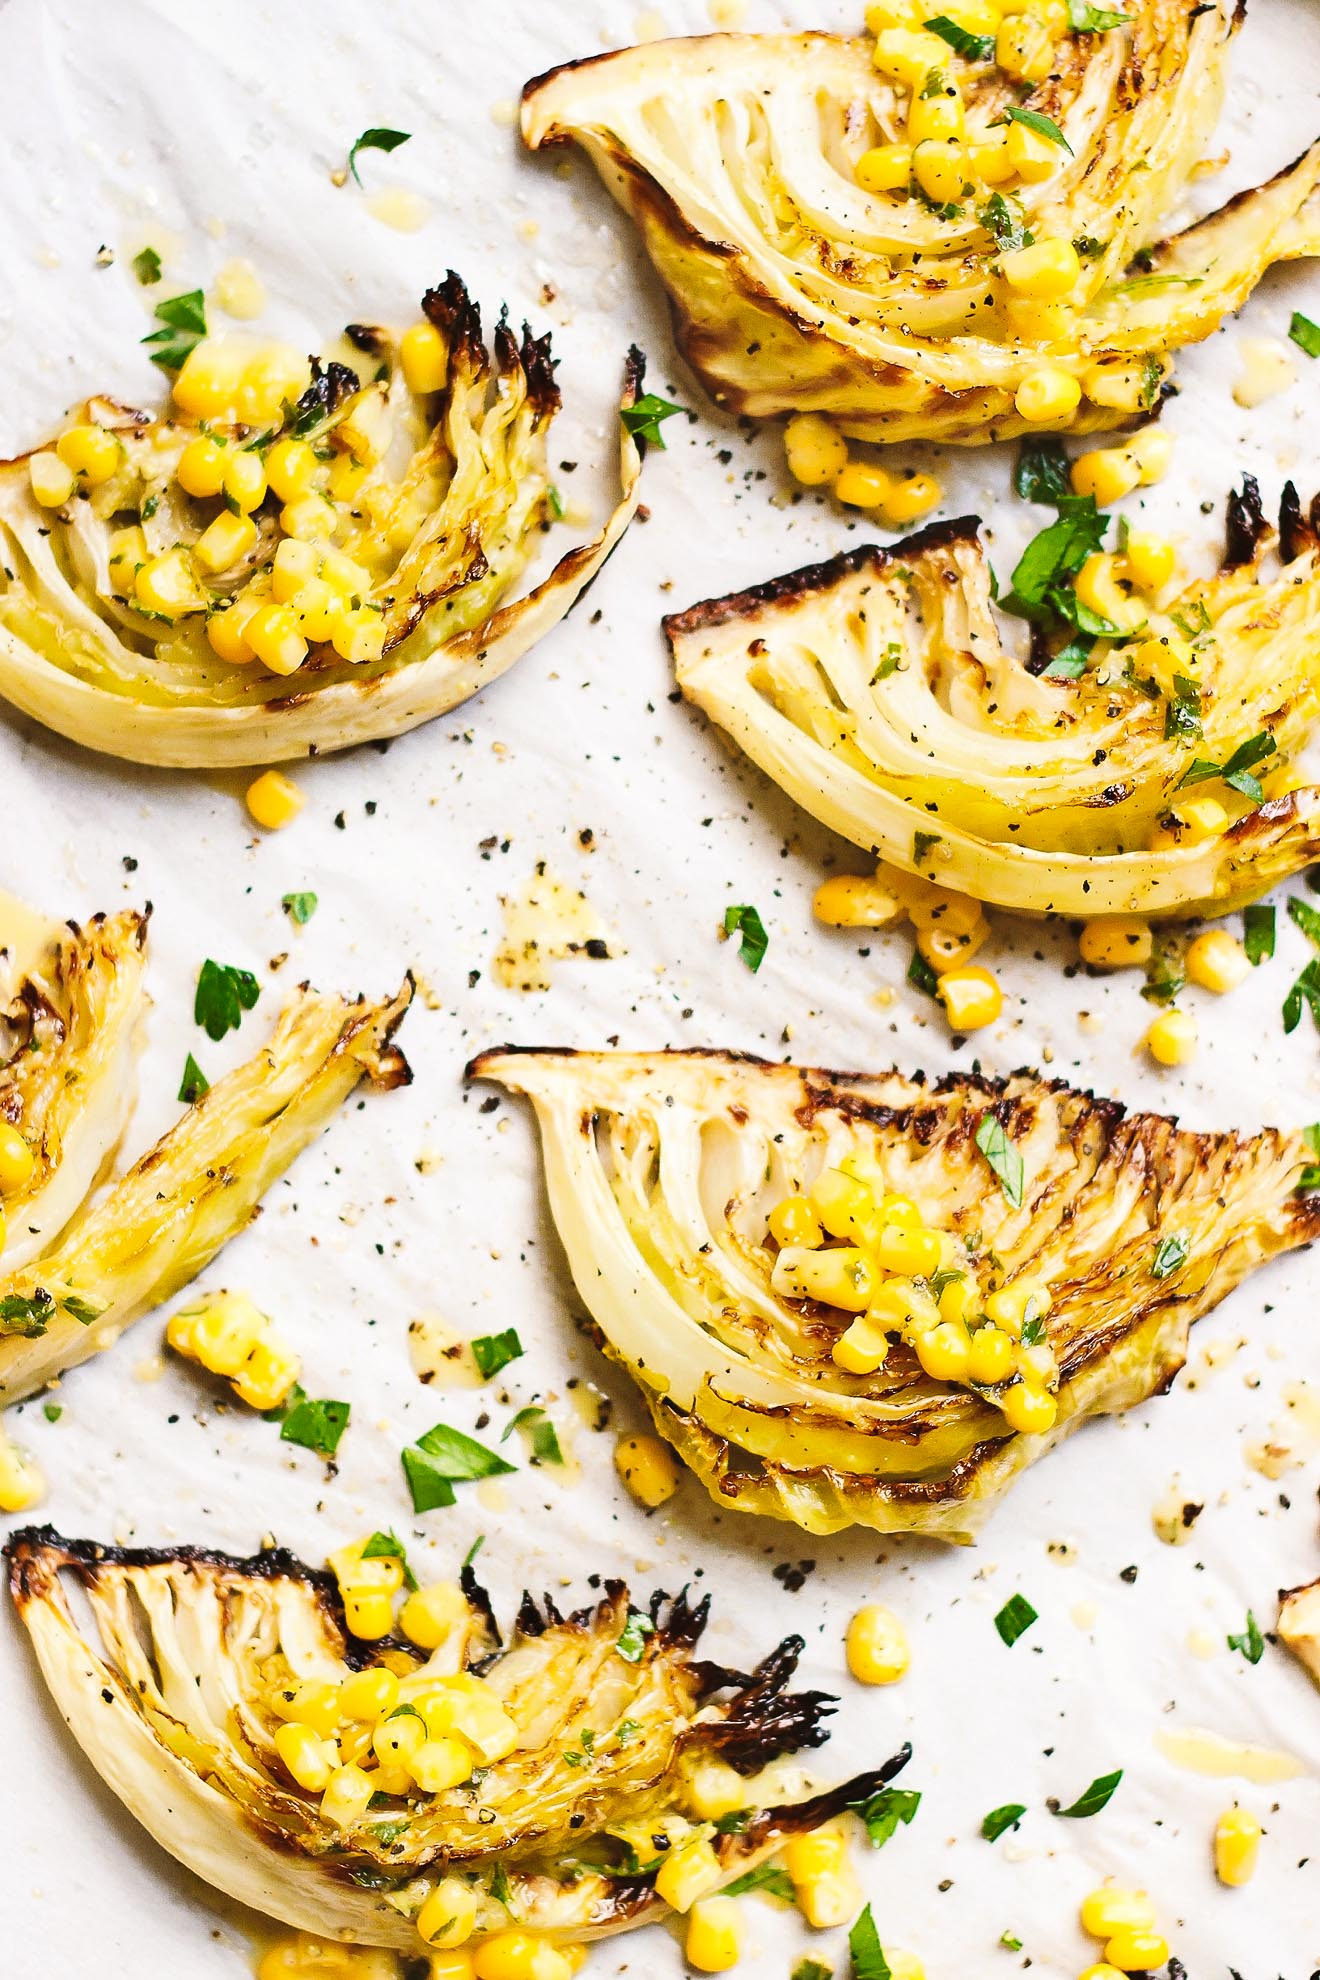 Roasted Cabbage with Sweet Corn + Spicy Vinaigrette | Roasted cabbage wedges with sweet corn and a roasted, spicy vinaigrette is an easy, satisfying summery meal. Naturally gluten-free and vegan.